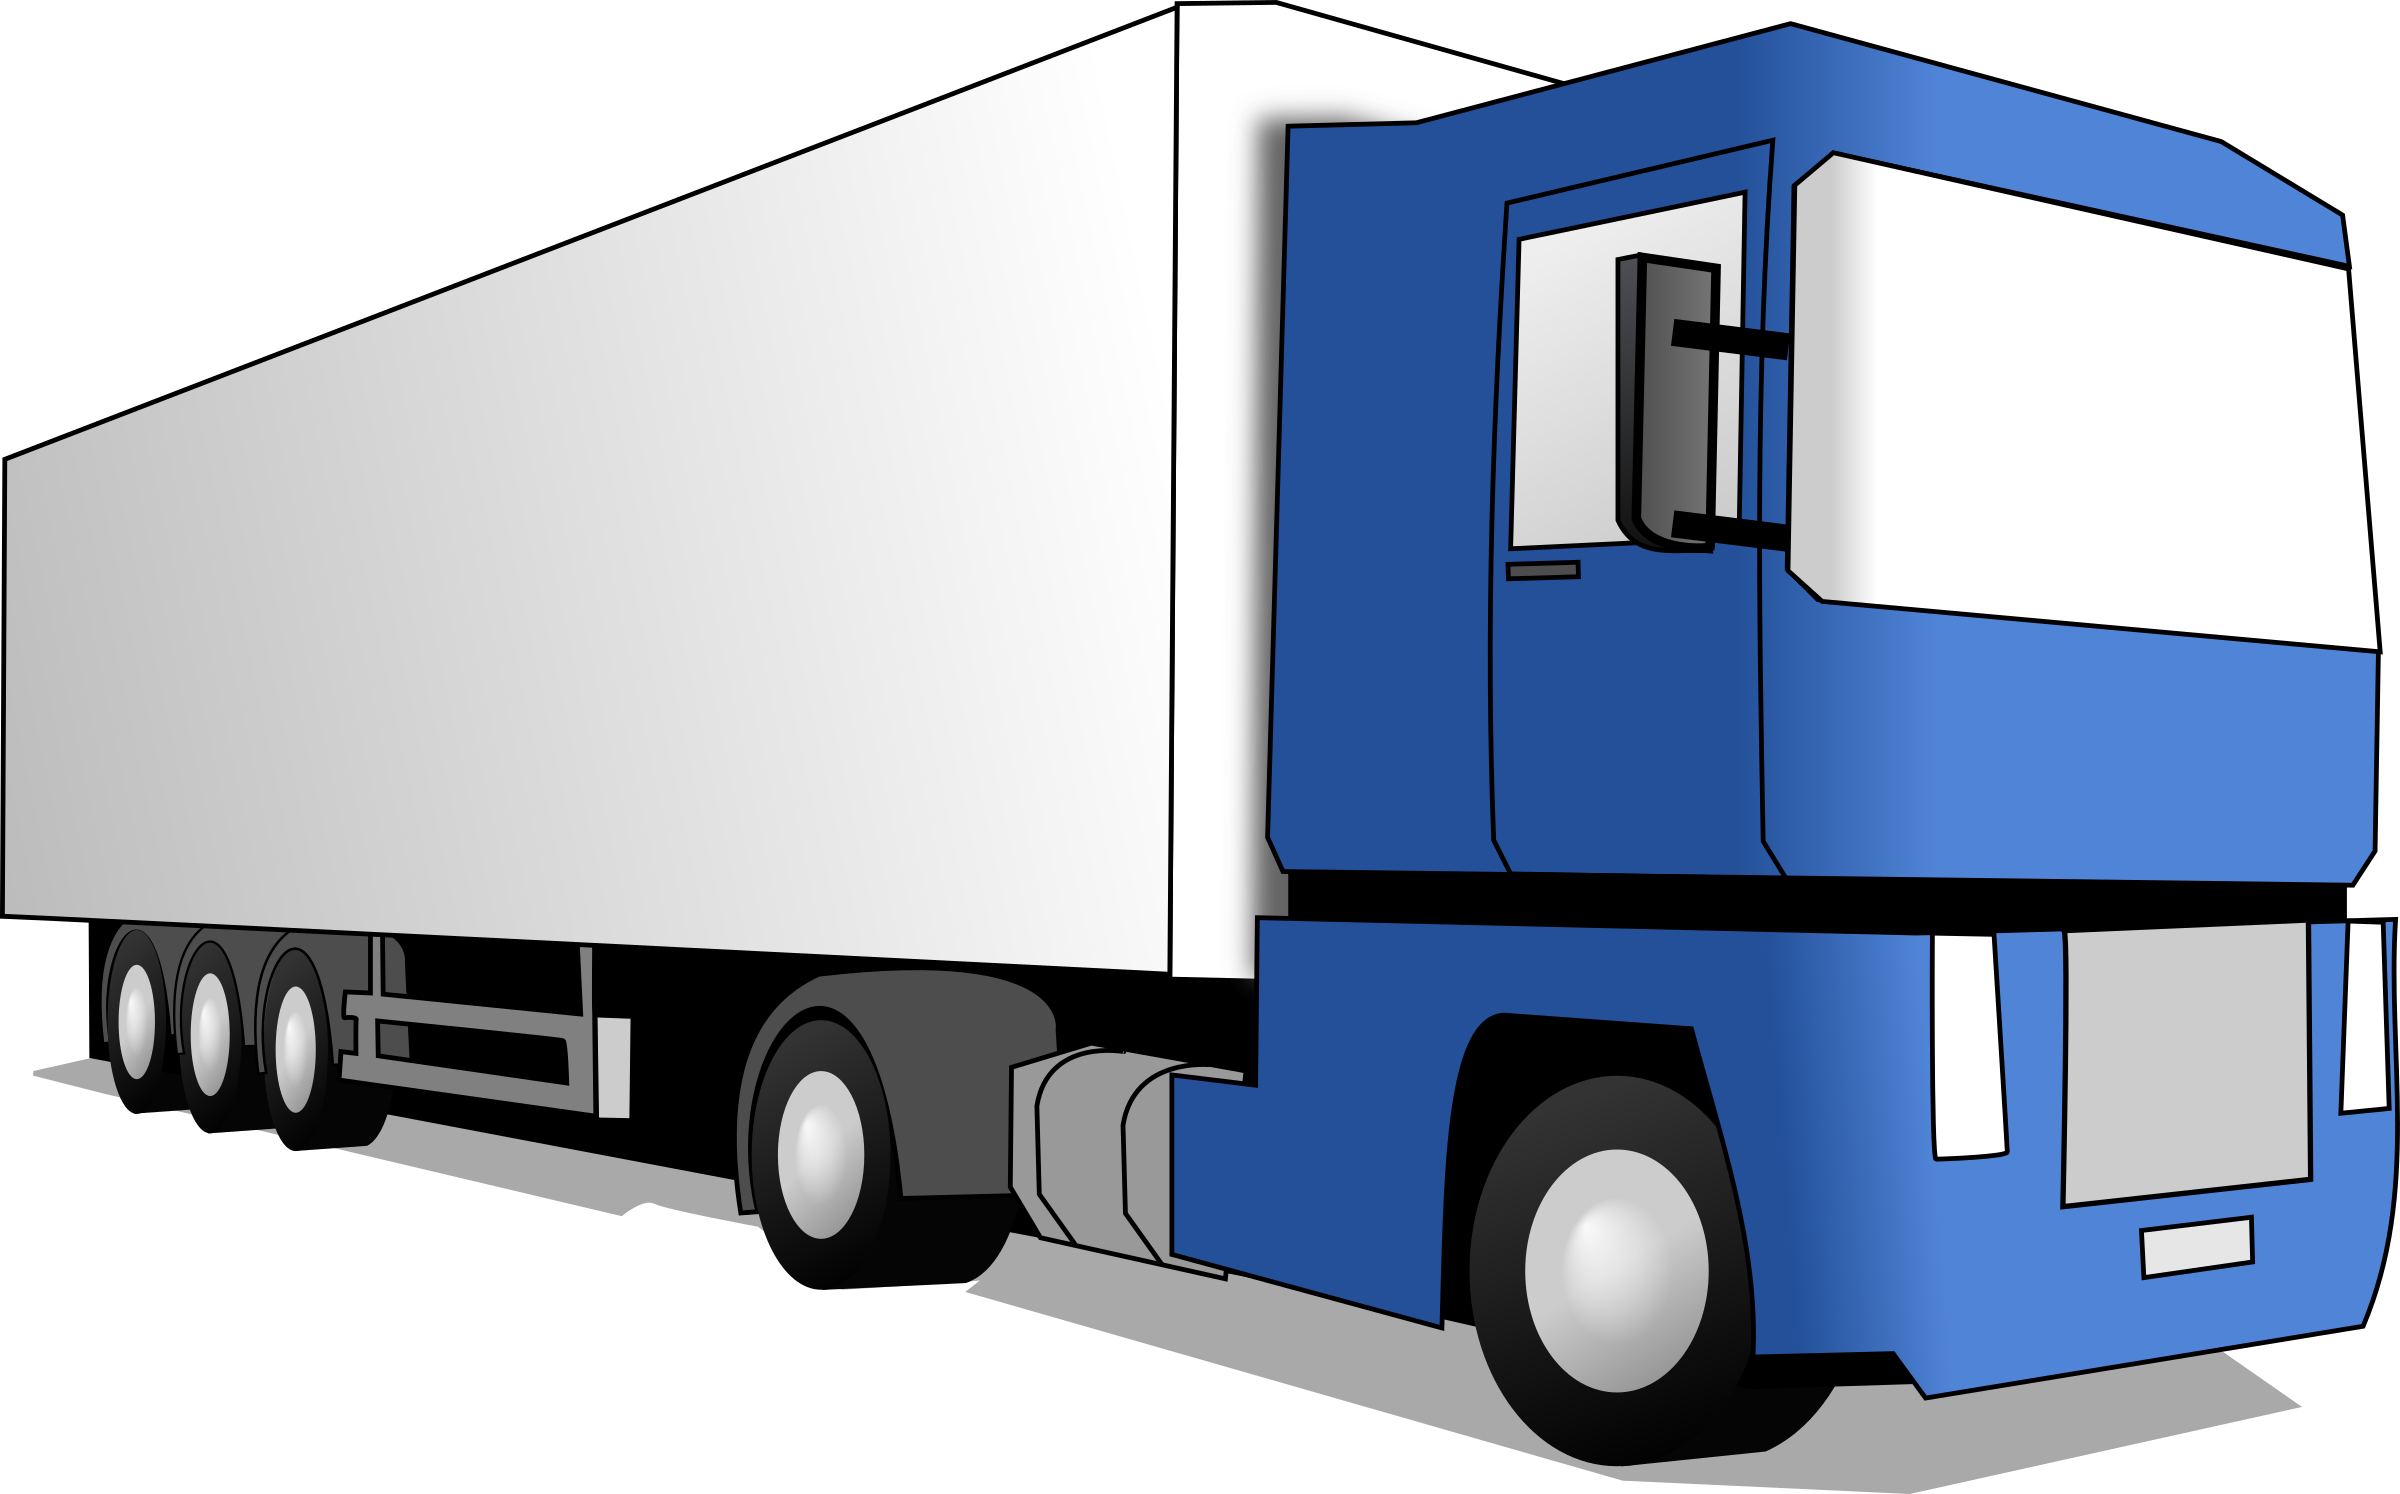 Auto transport truck clipart image black and white download Truck Top View Clipart   Free download best Truck Top View Clipart ... image black and white download